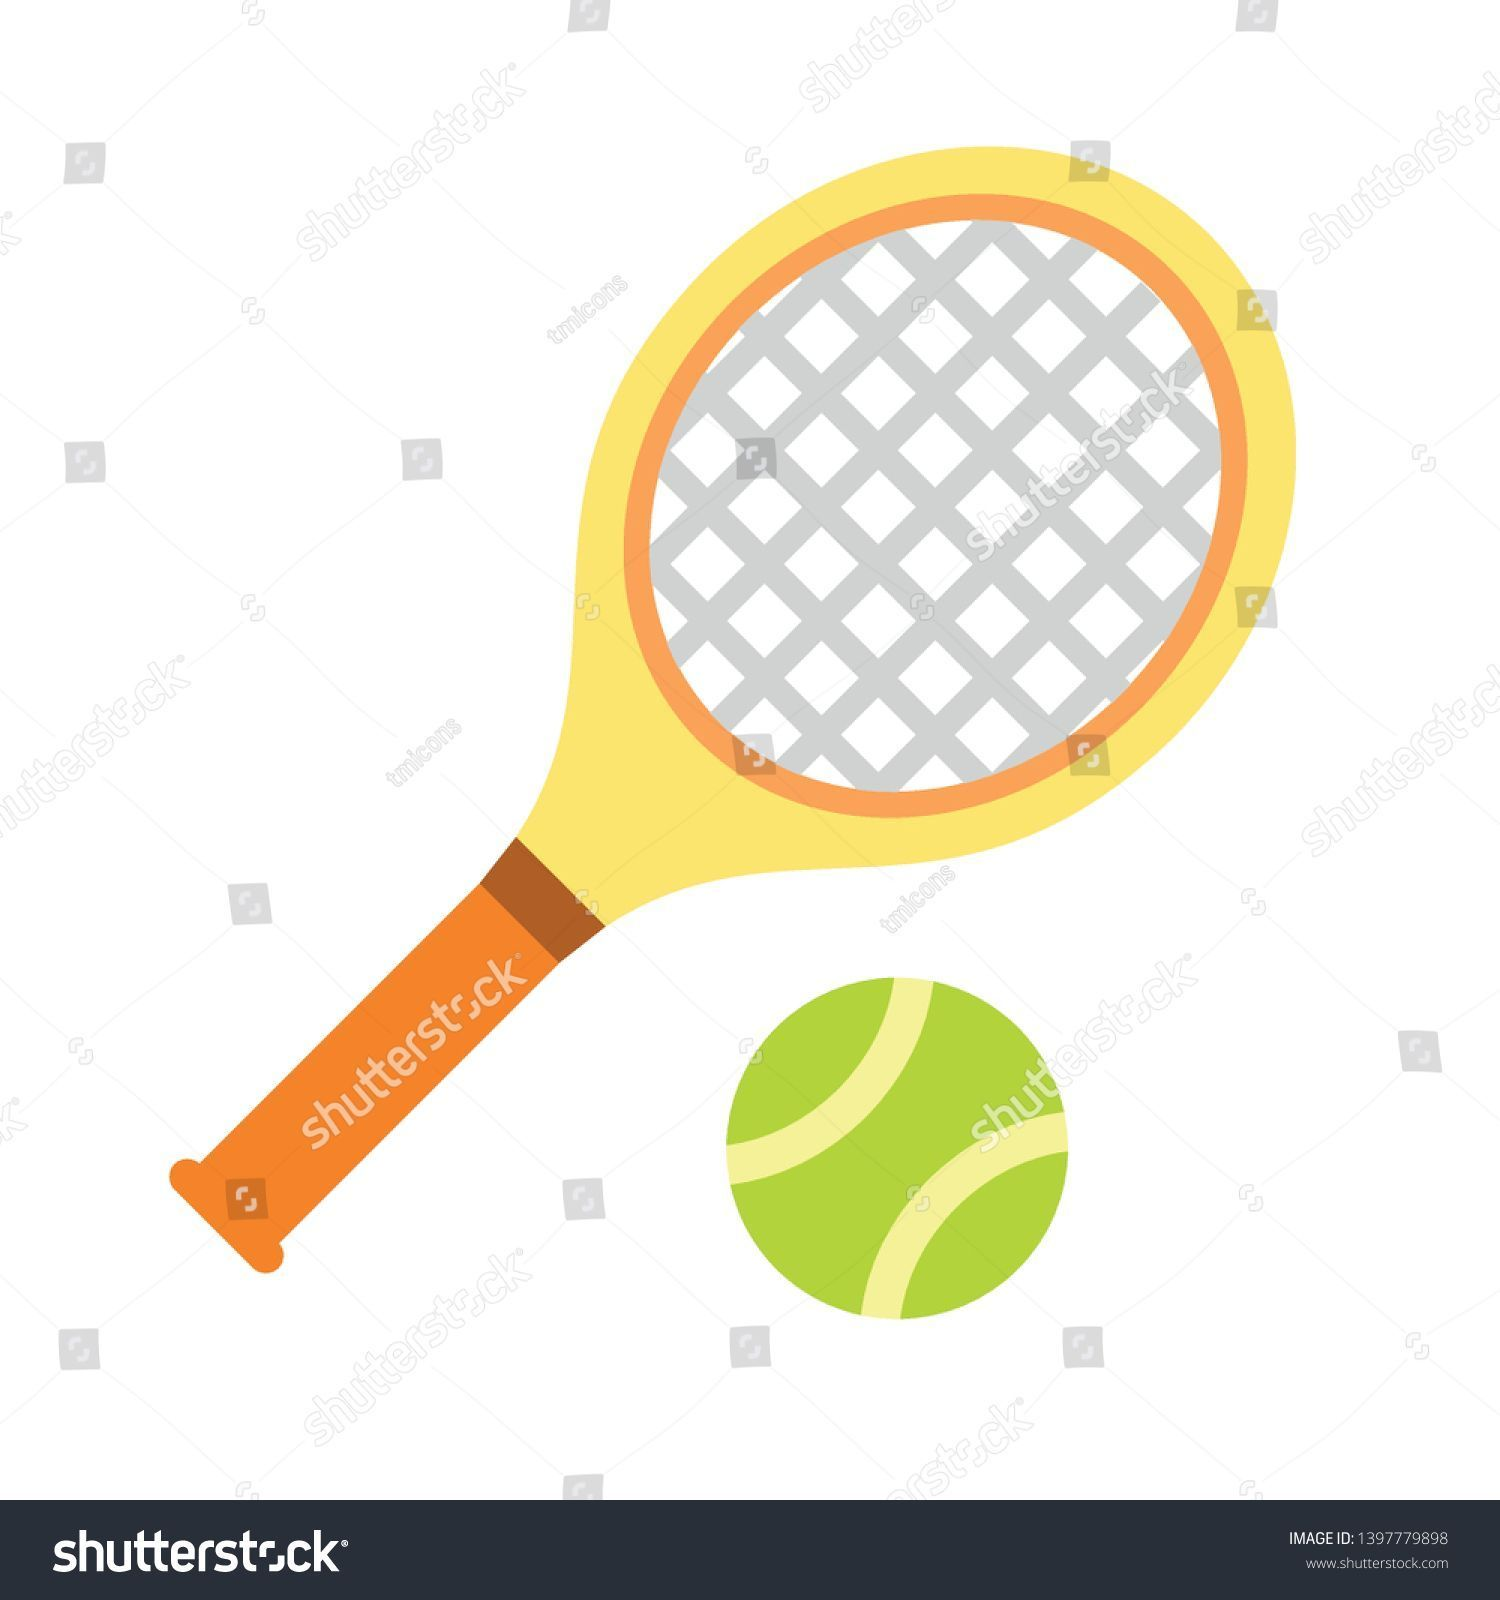 Tennis Racket With Ball Sign Icon Sport Laurel Wreath Symbol Winner Award Abs Abs A Tennis Racket With Ball Sign I In 2020 Tennis Racket Rackets Tennis